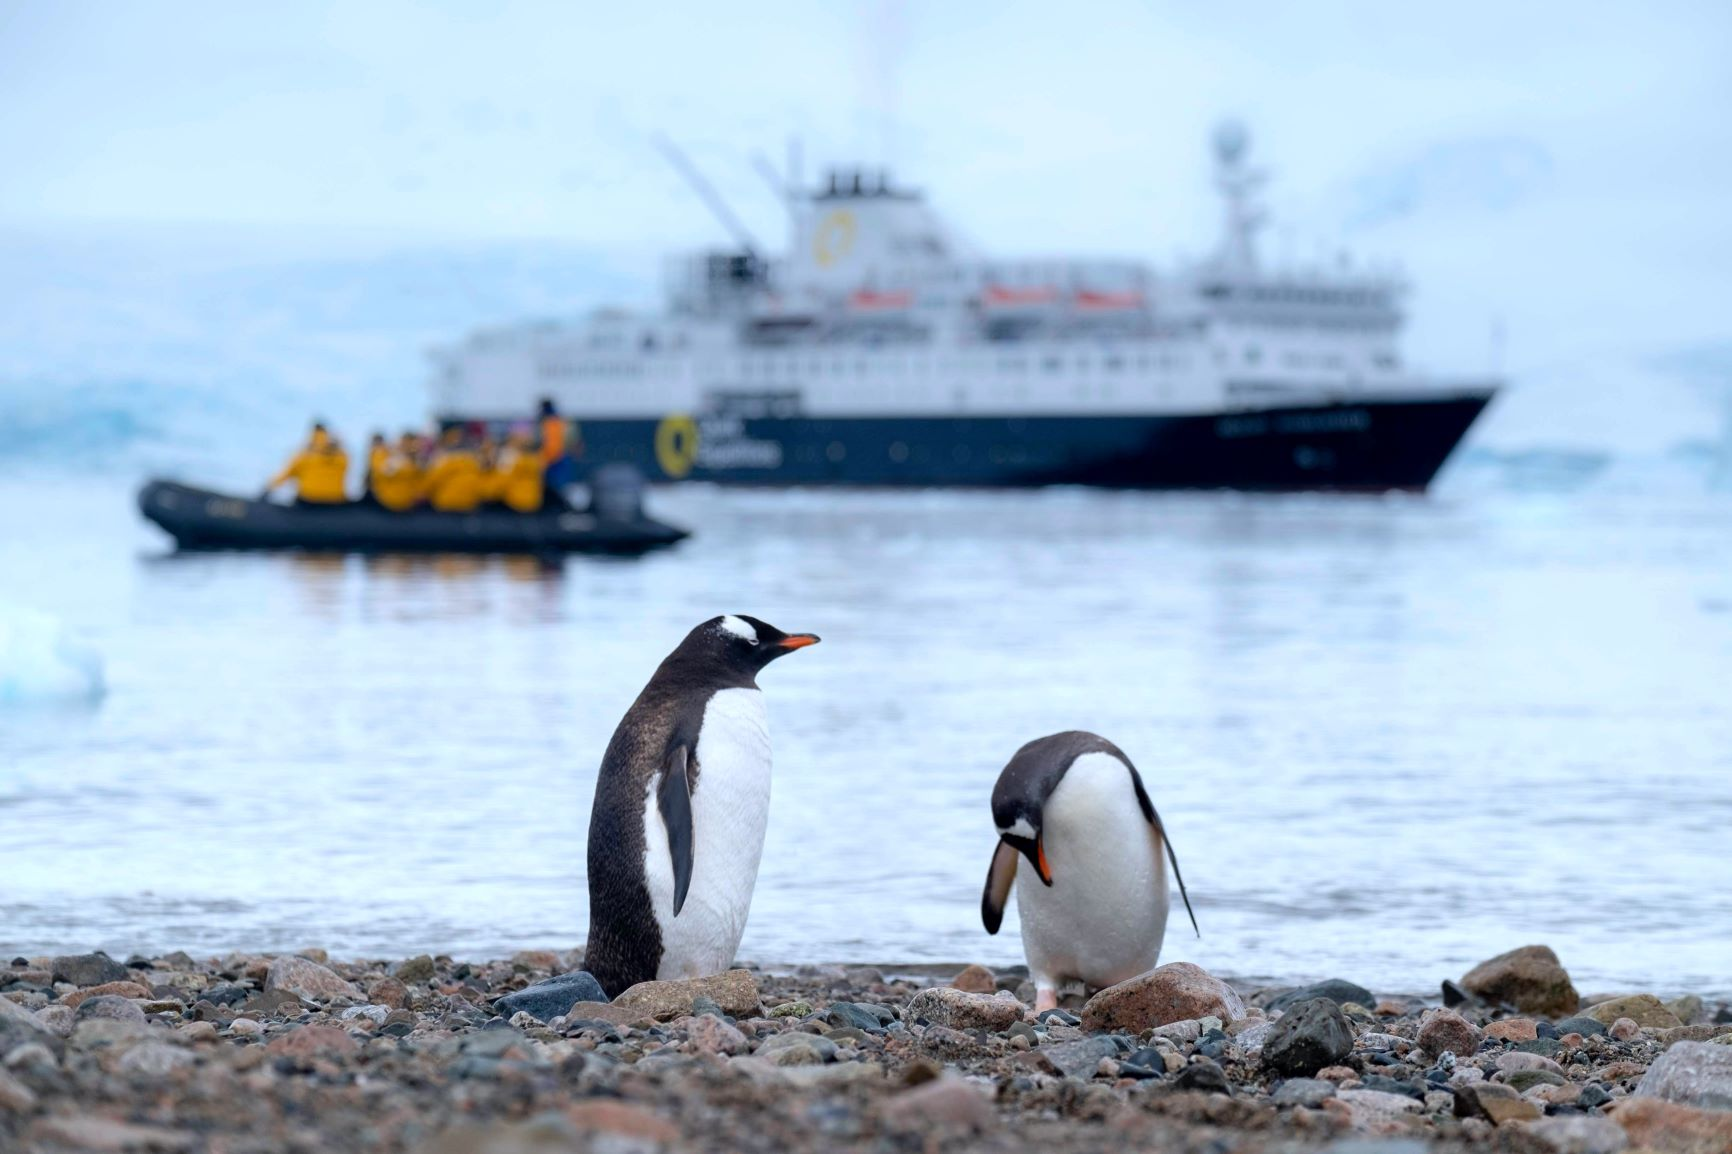 Antarctic science shrunk for COVID-19 – Expert Reaction